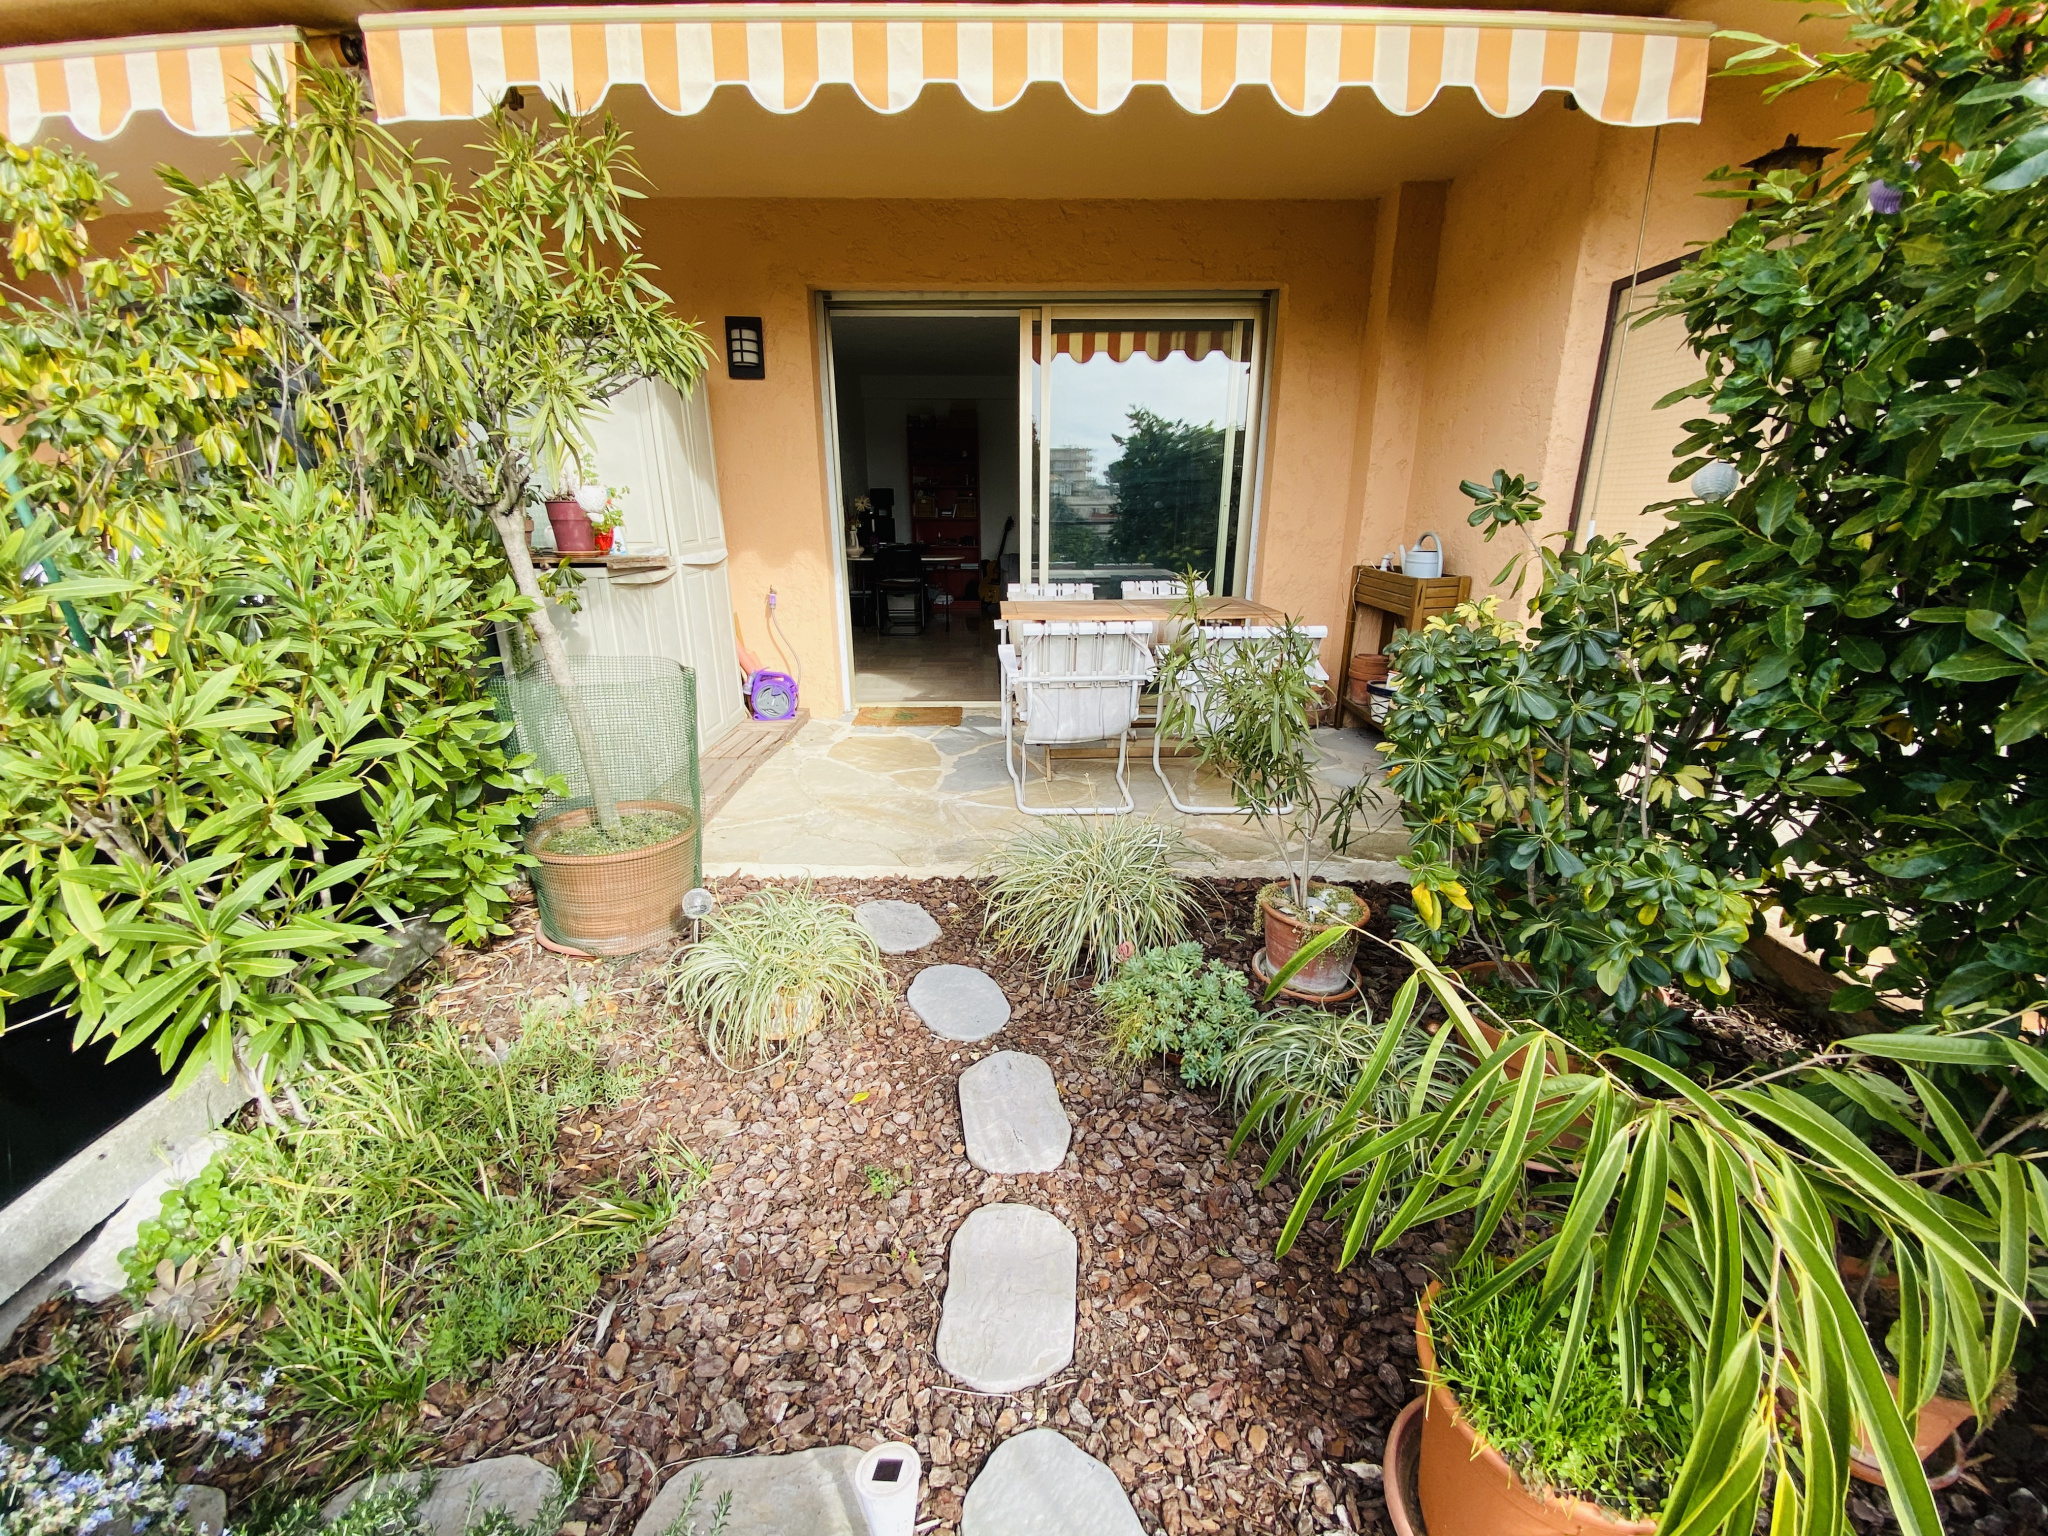 NEAR CENTER VILLE DE VENCE - 2P of 55m2 in residence with swimming pool. Terrace. Parking and cellar